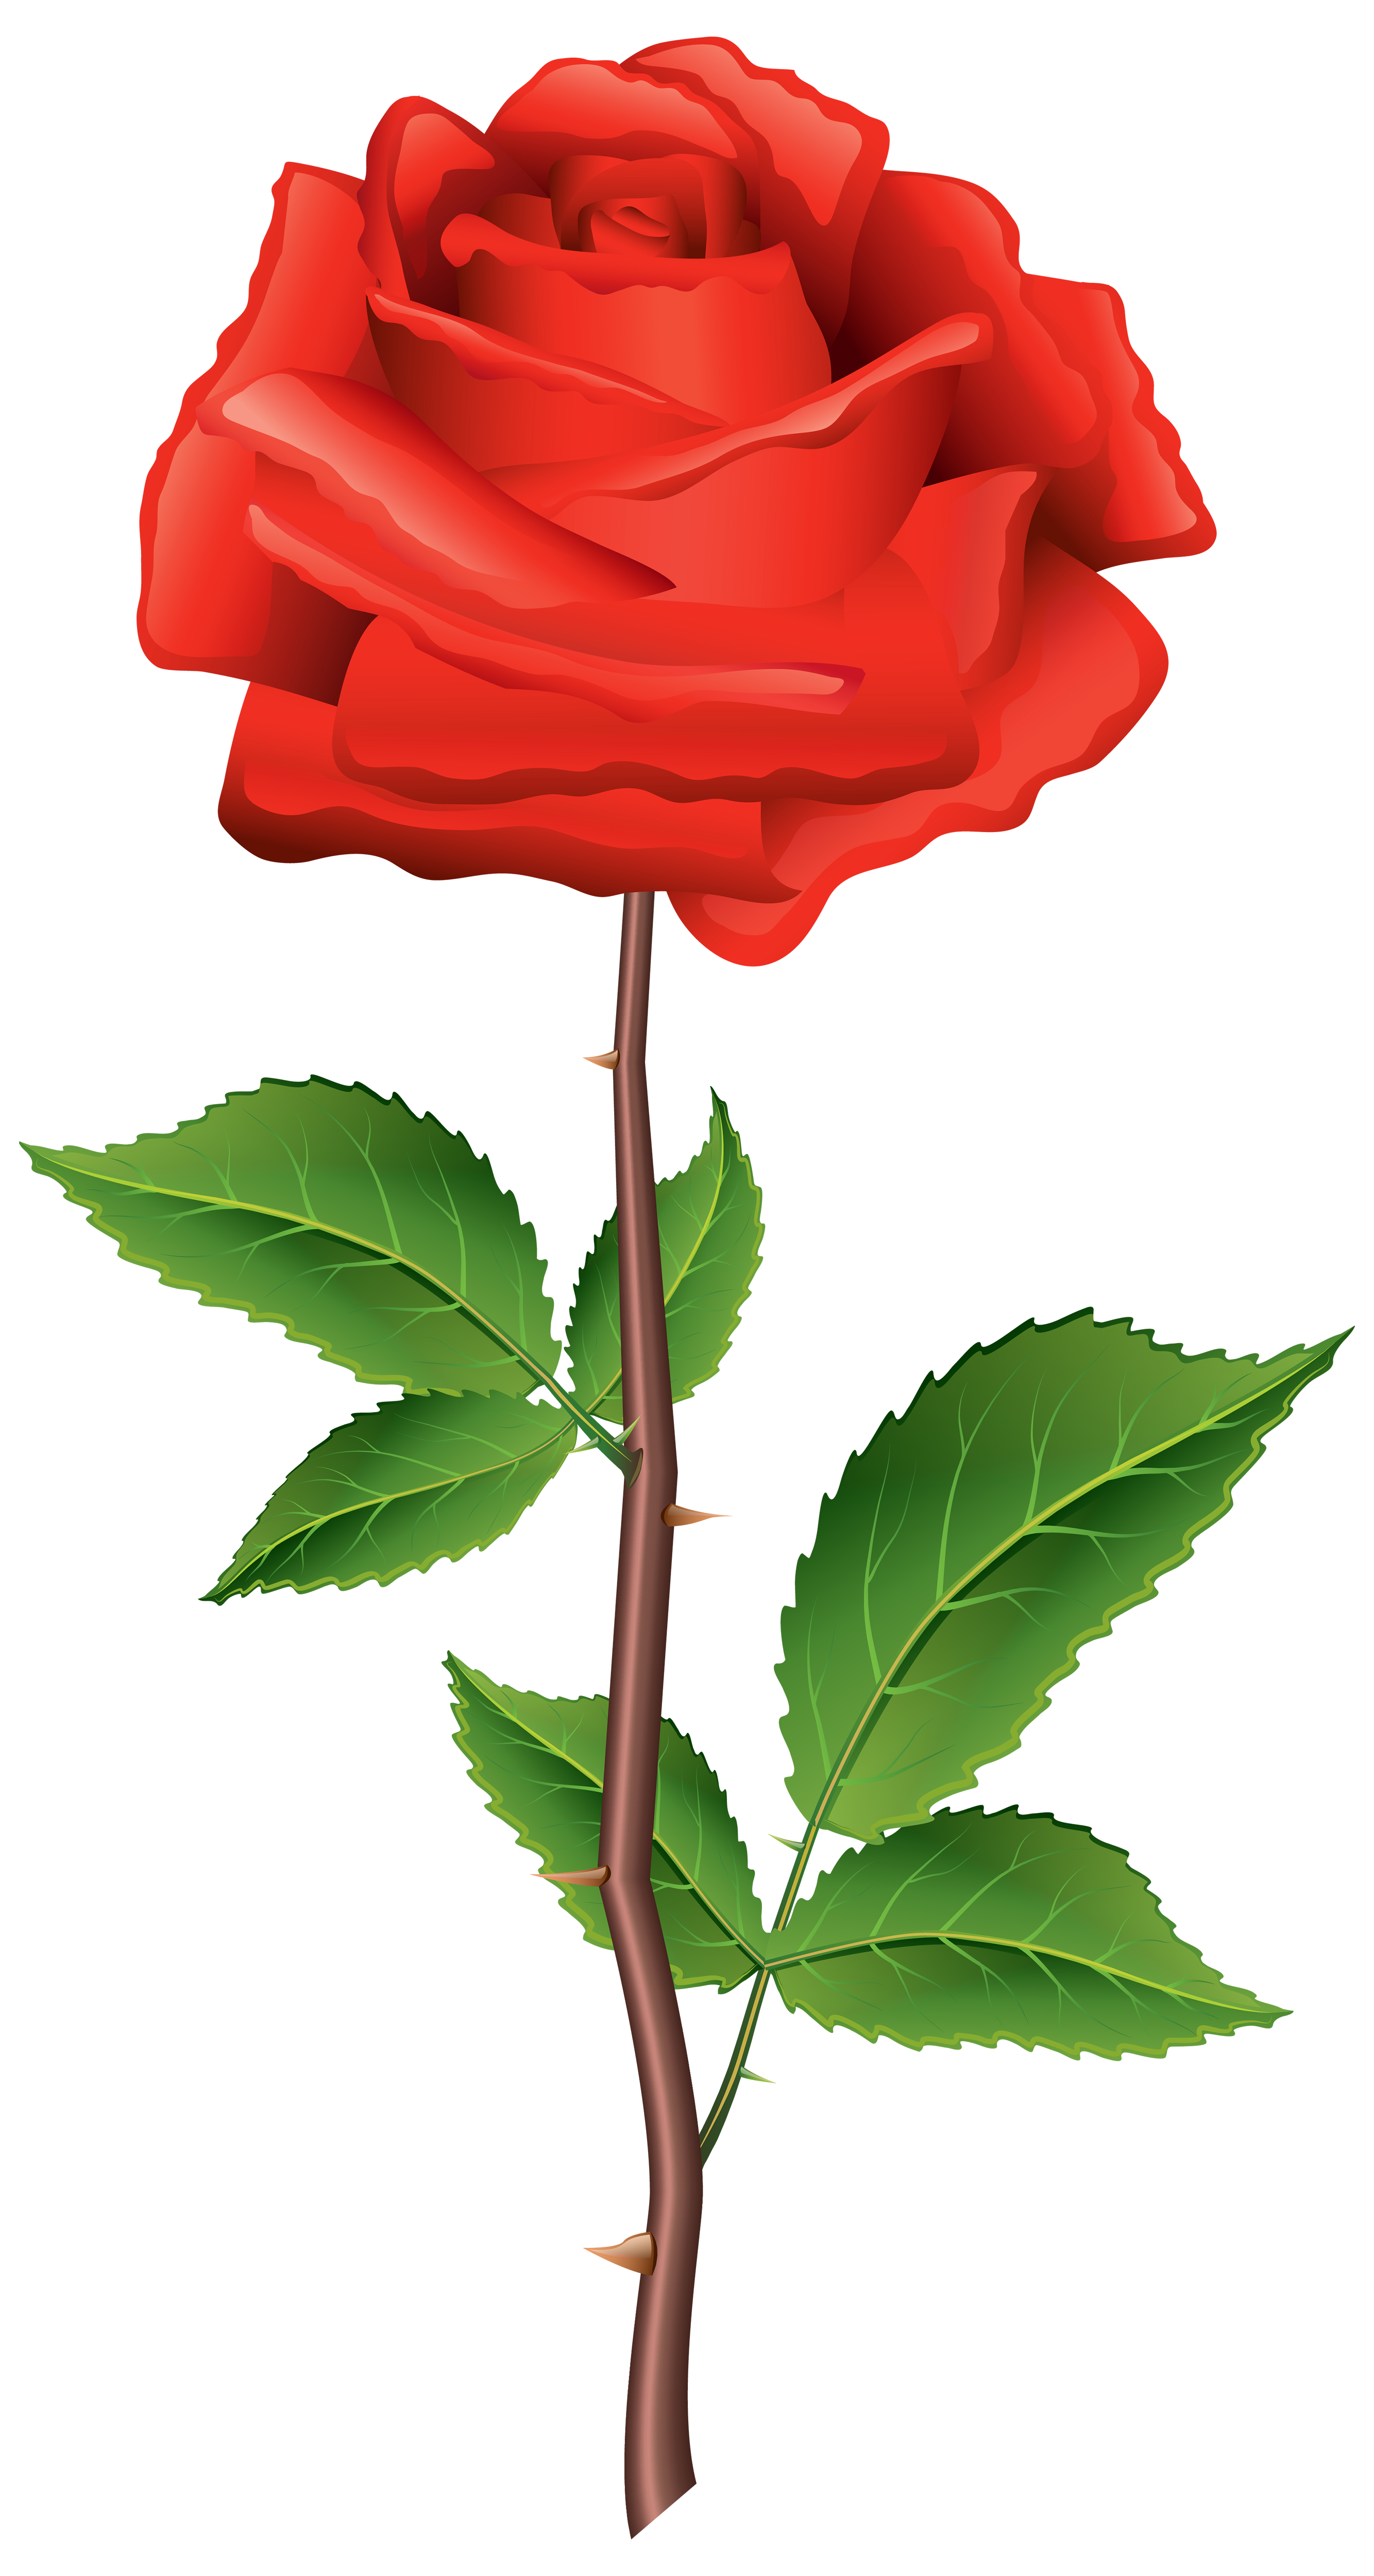 Rose with stem clipart vector black and white stock Stem Red Rose PNG Clipart - Best WEB Clipart vector black and white stock